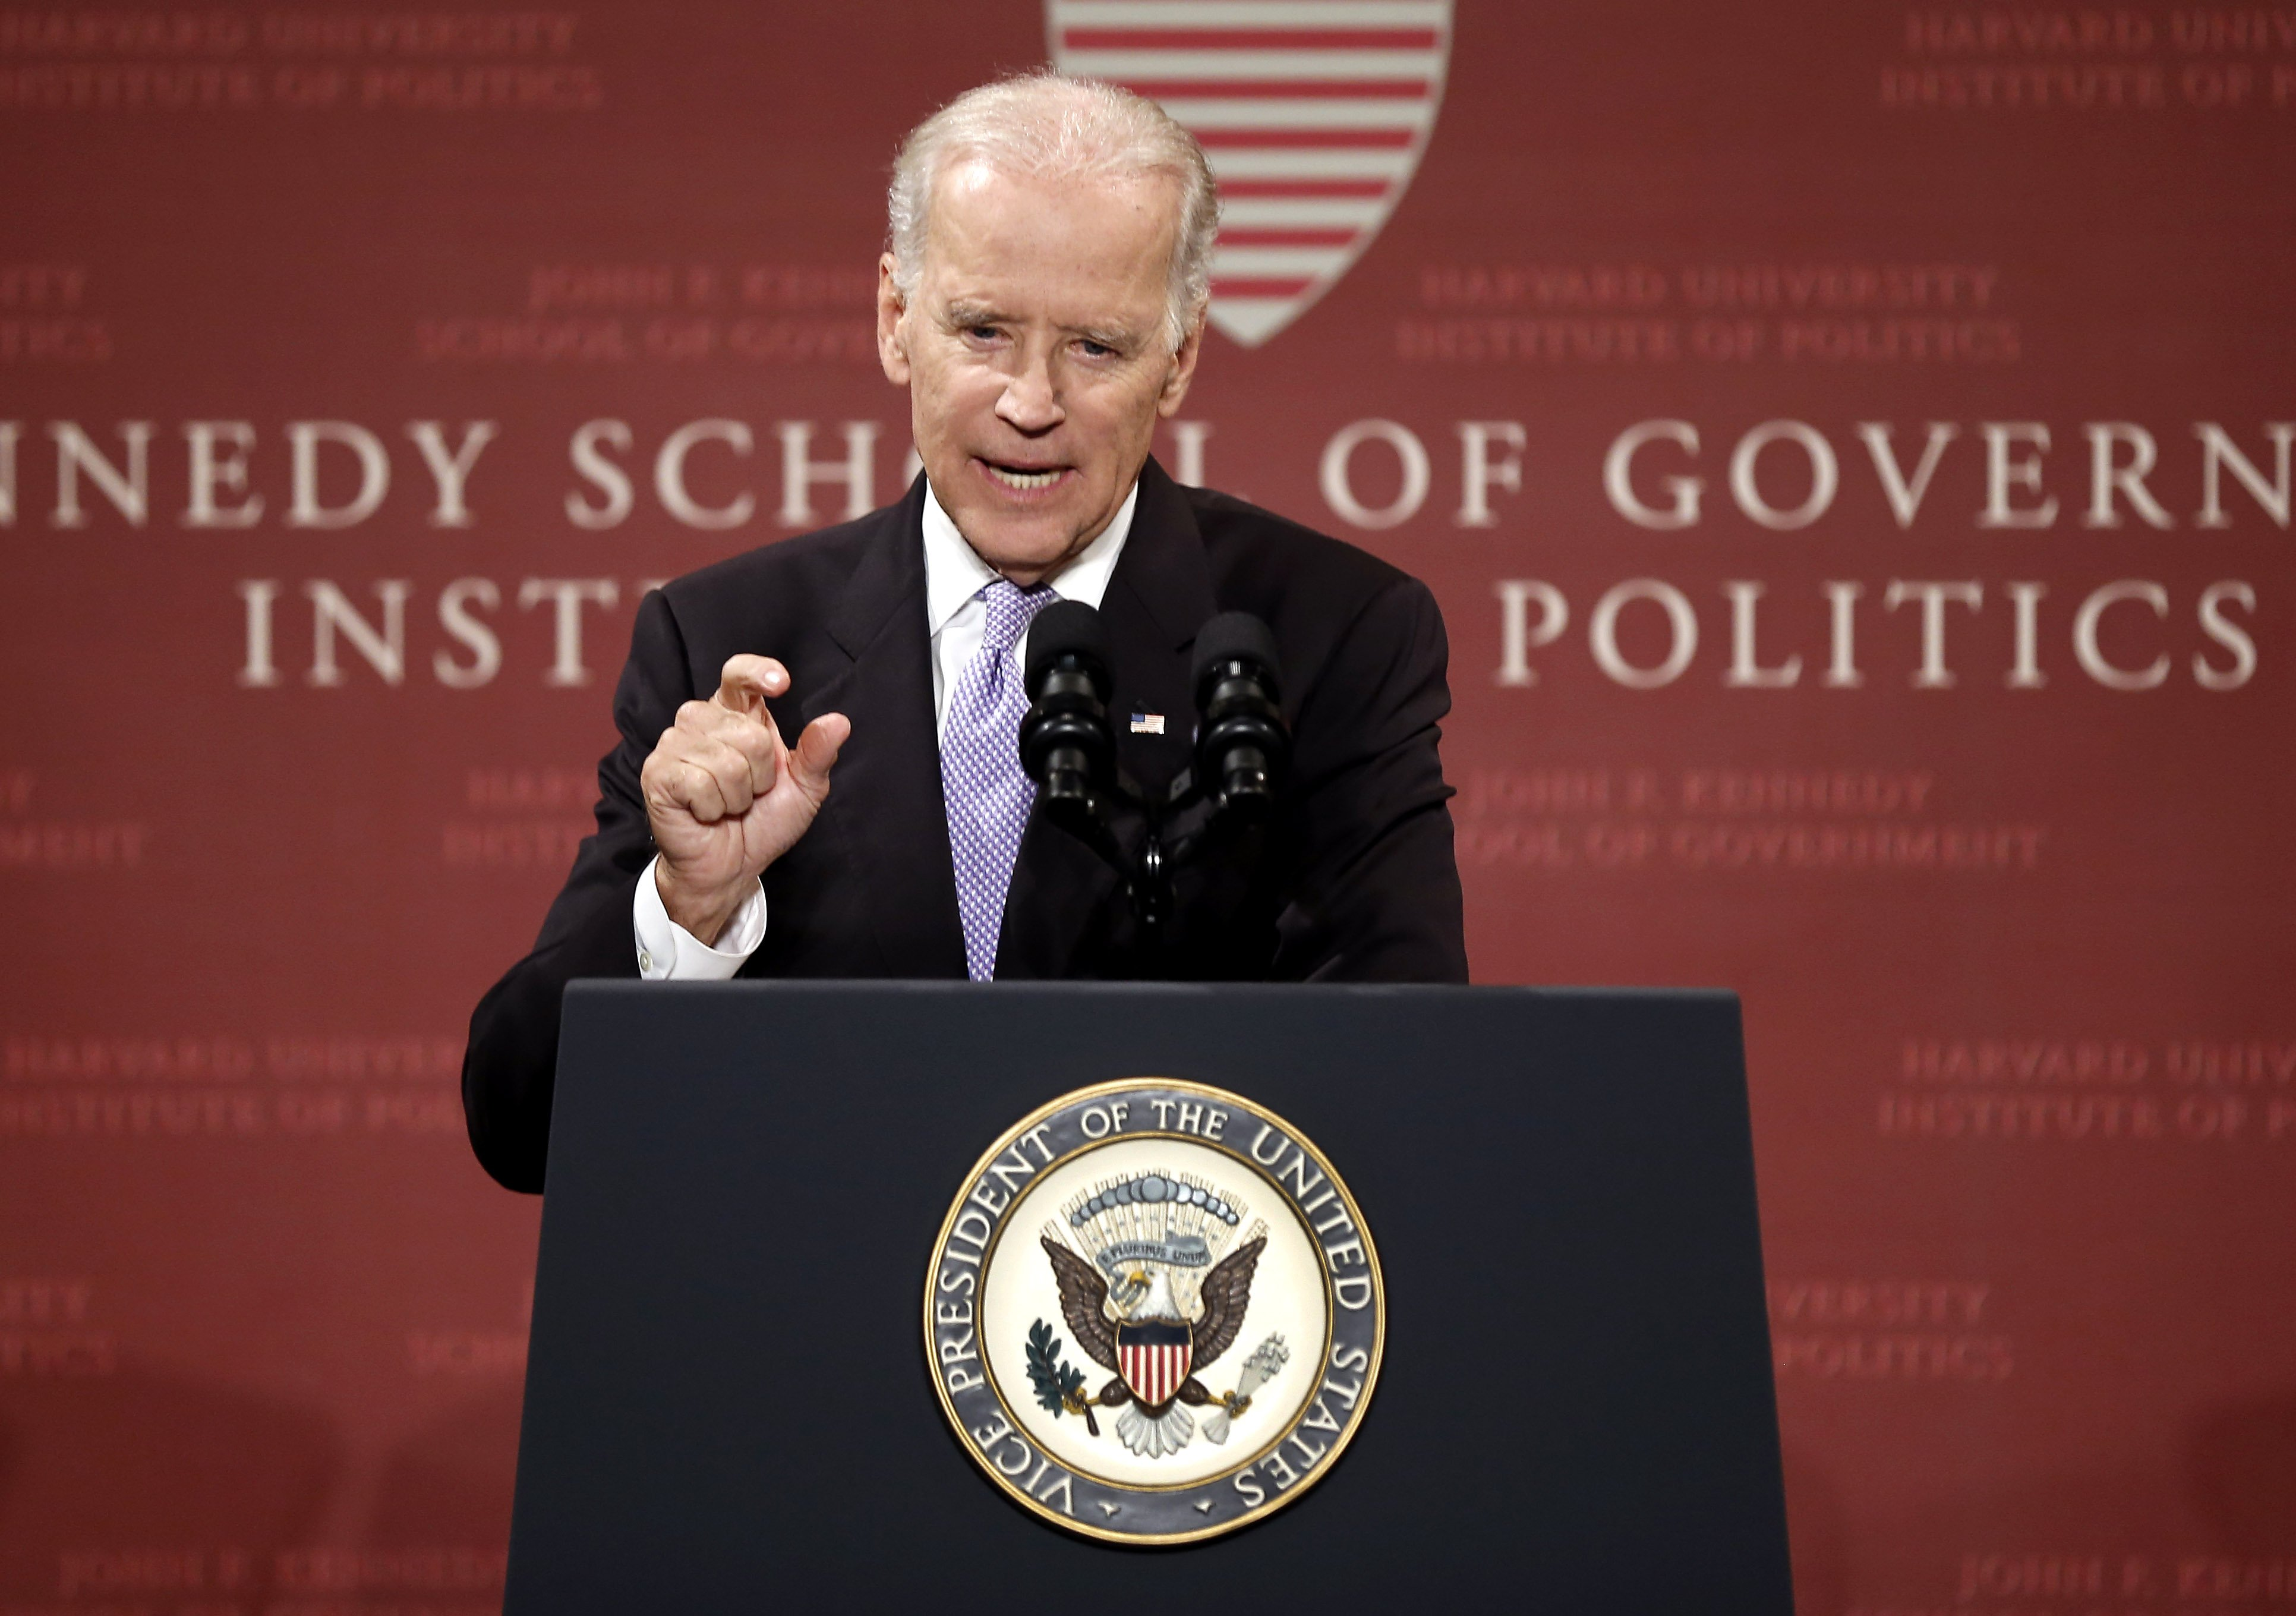 Vice President Joe Biden speaks to students faculty and staff at Harvard University's Kennedy School of Government in Cambridge, Mass. on Oct. 2, 2014.